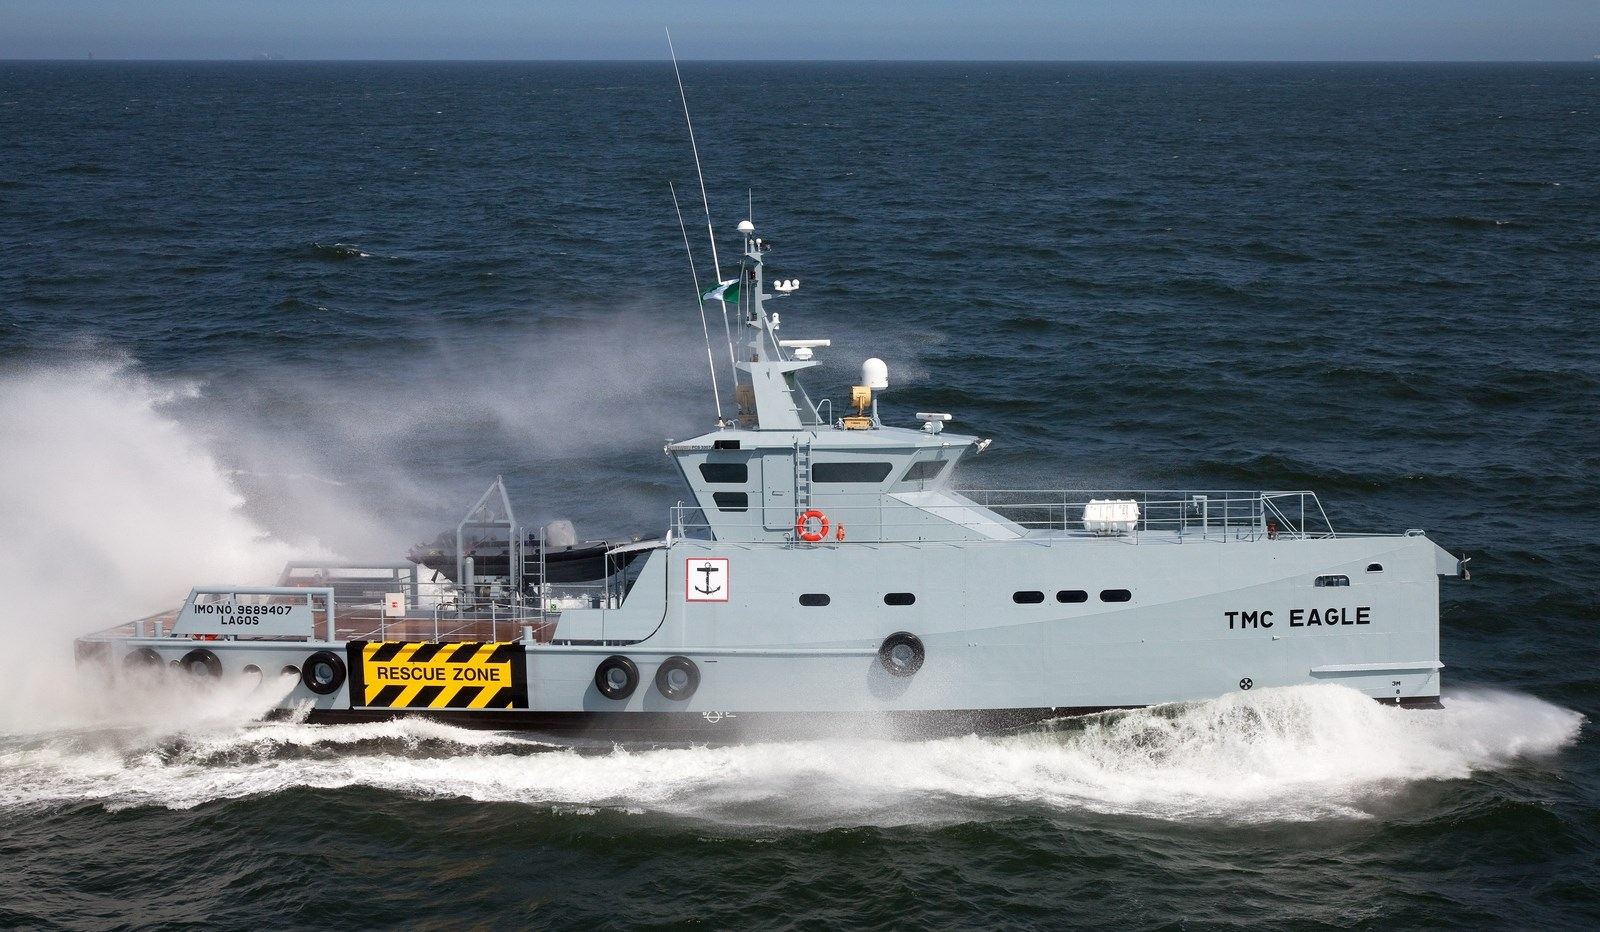 Security Crew Supply Vessel 3307 for maritime safety duties